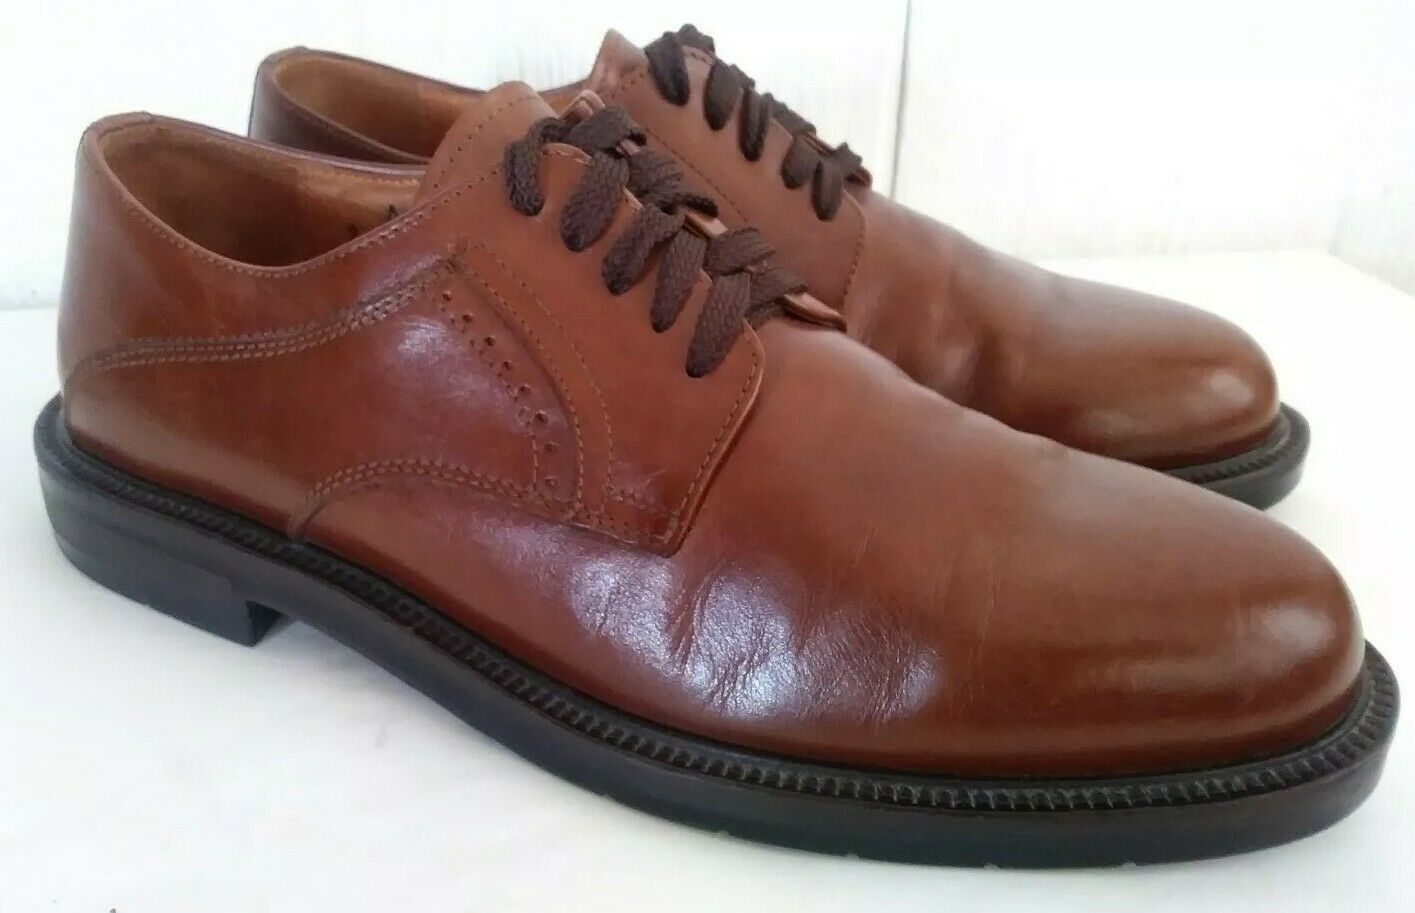 Men's Johnston & Murphy Passport Lace Up Oxfords Brown Leather US Size 9 M